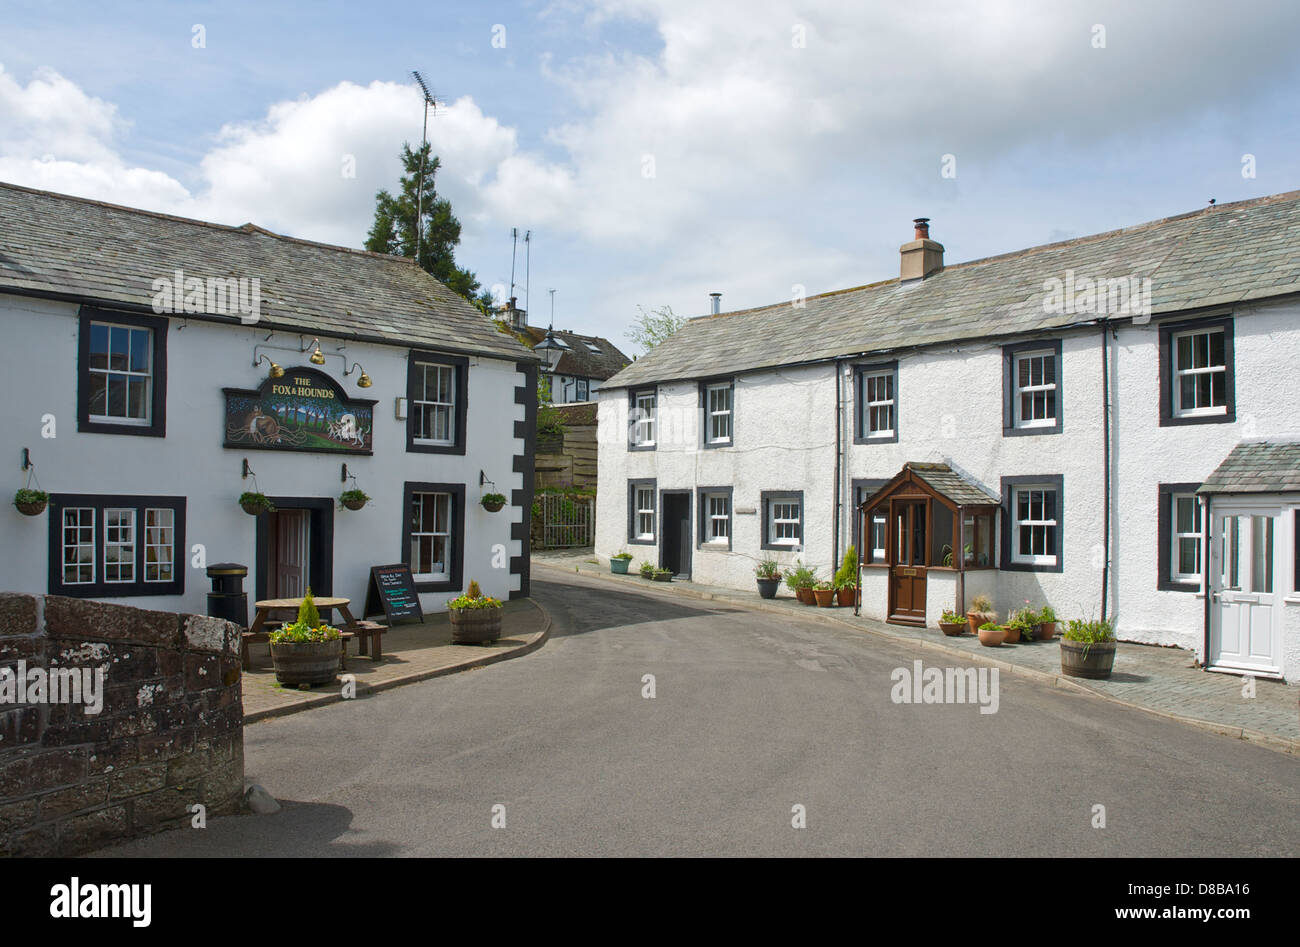 The Fox & Hounds pub in the village of Ennerdale Bridge, West Cumbria, England UK - Stock Image